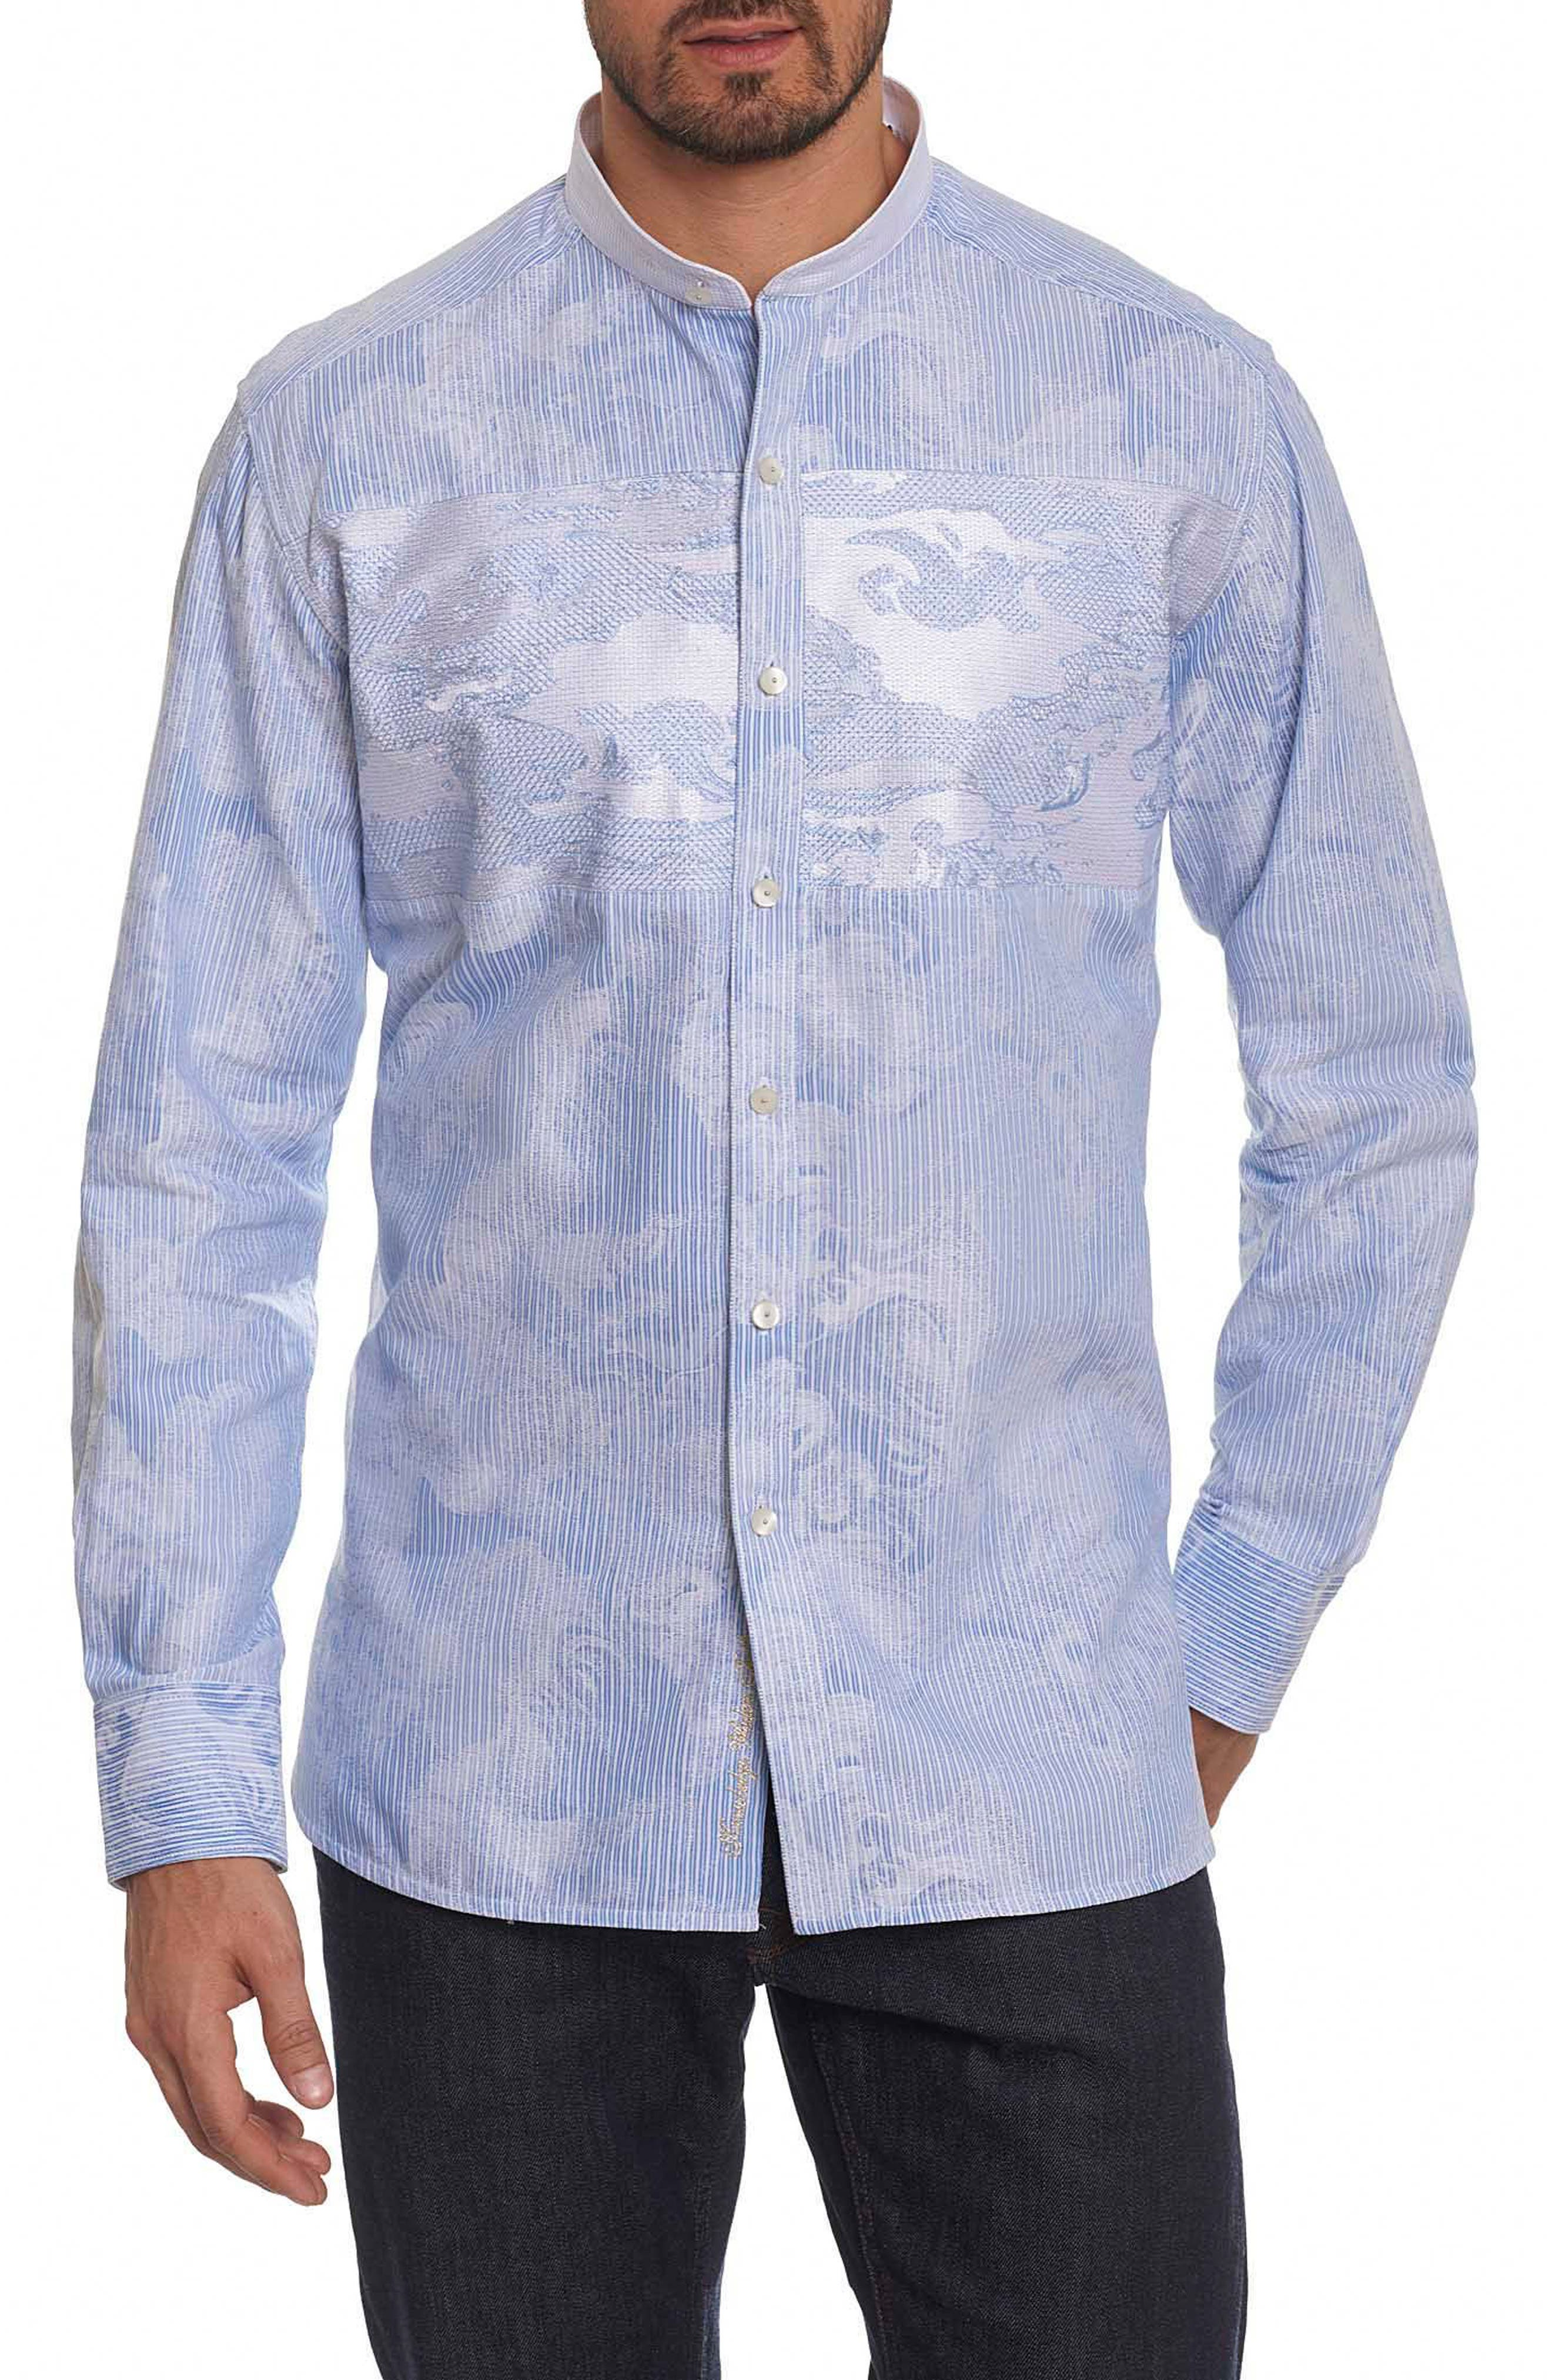 Be Heard Limited Edition Classic Fit Sport Shirt,                         Main,                         color, 400